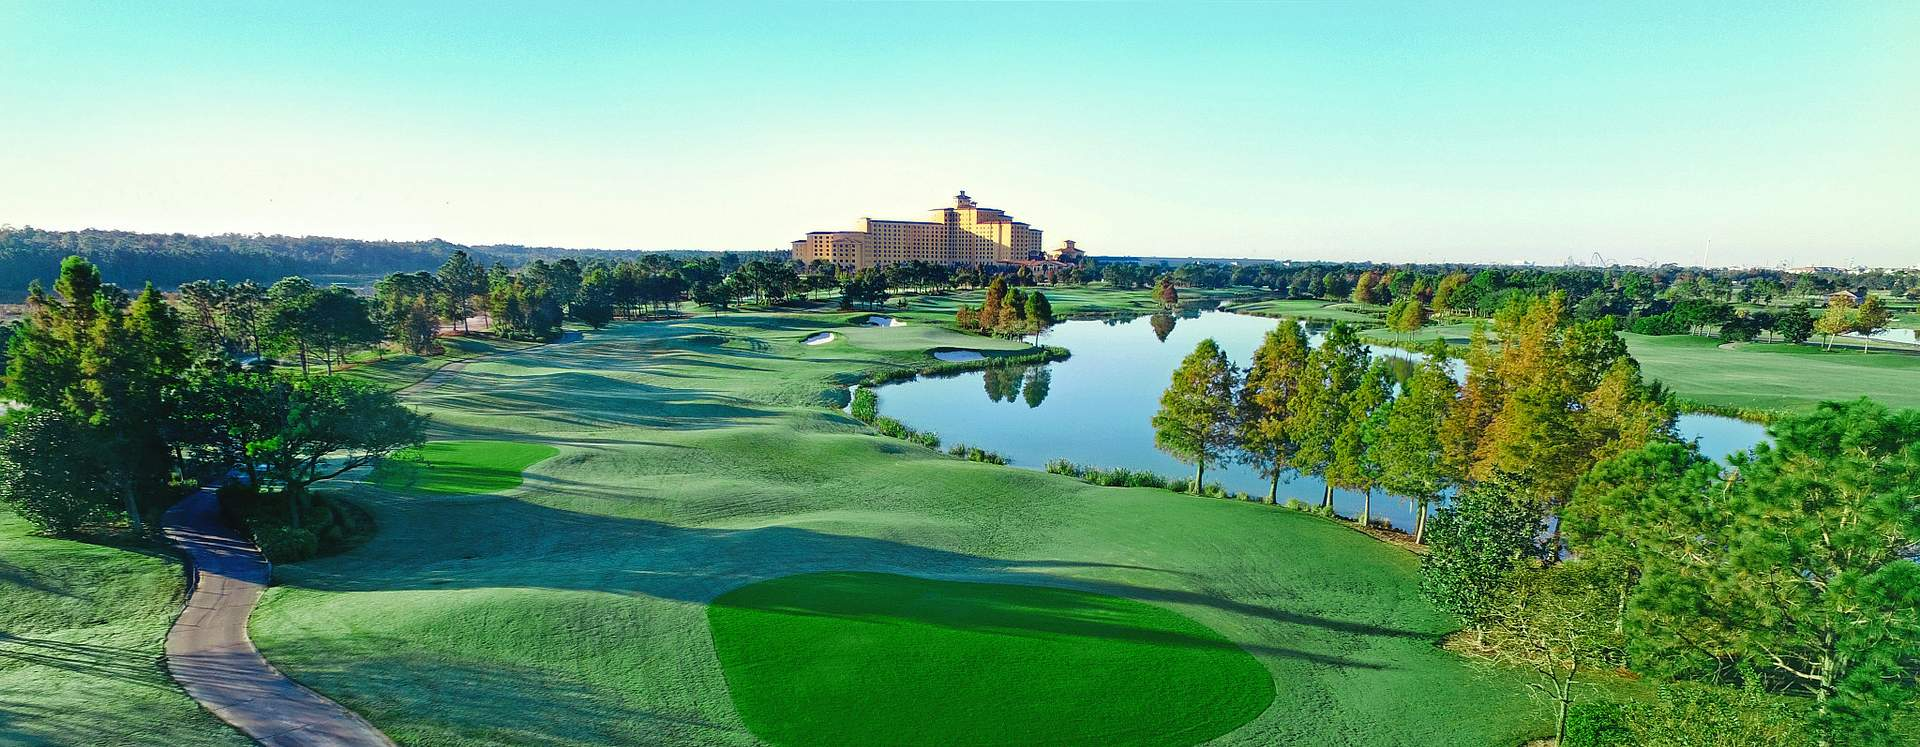 A low, aerial view of the golf course and resort at Shingle Creek Golf Club in Orlando